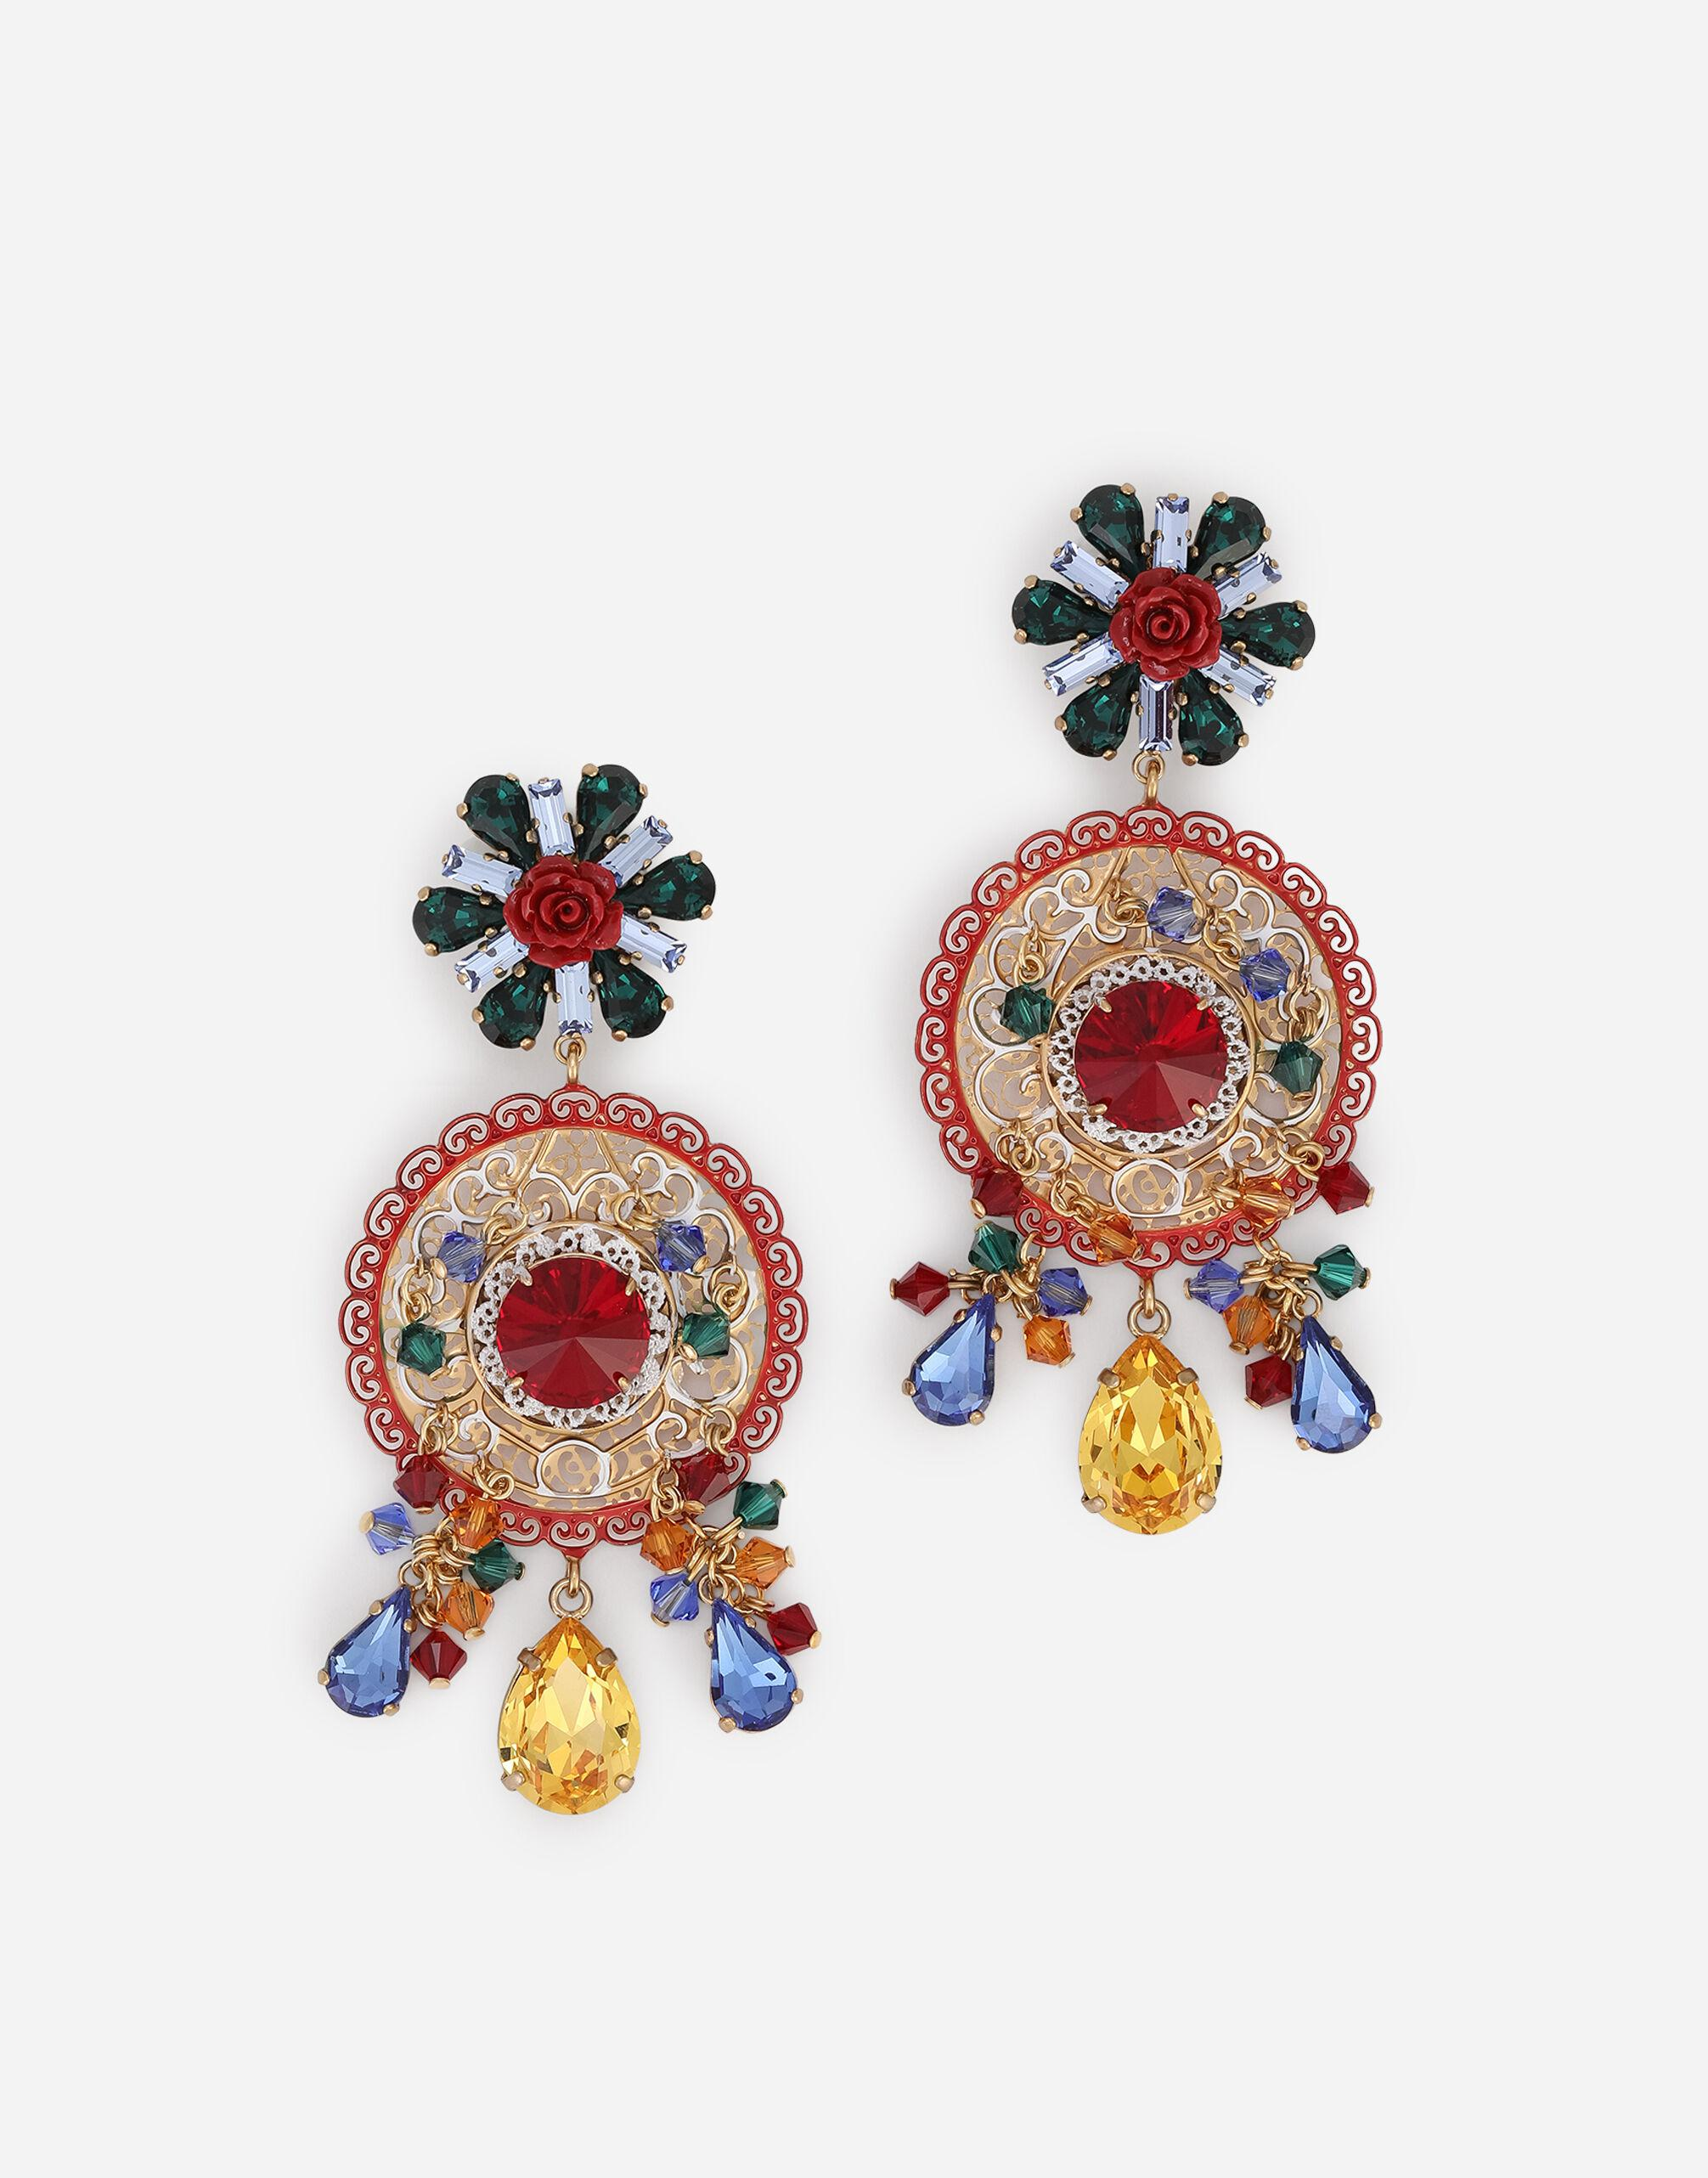 Earrings with rhinestones and decorative accents